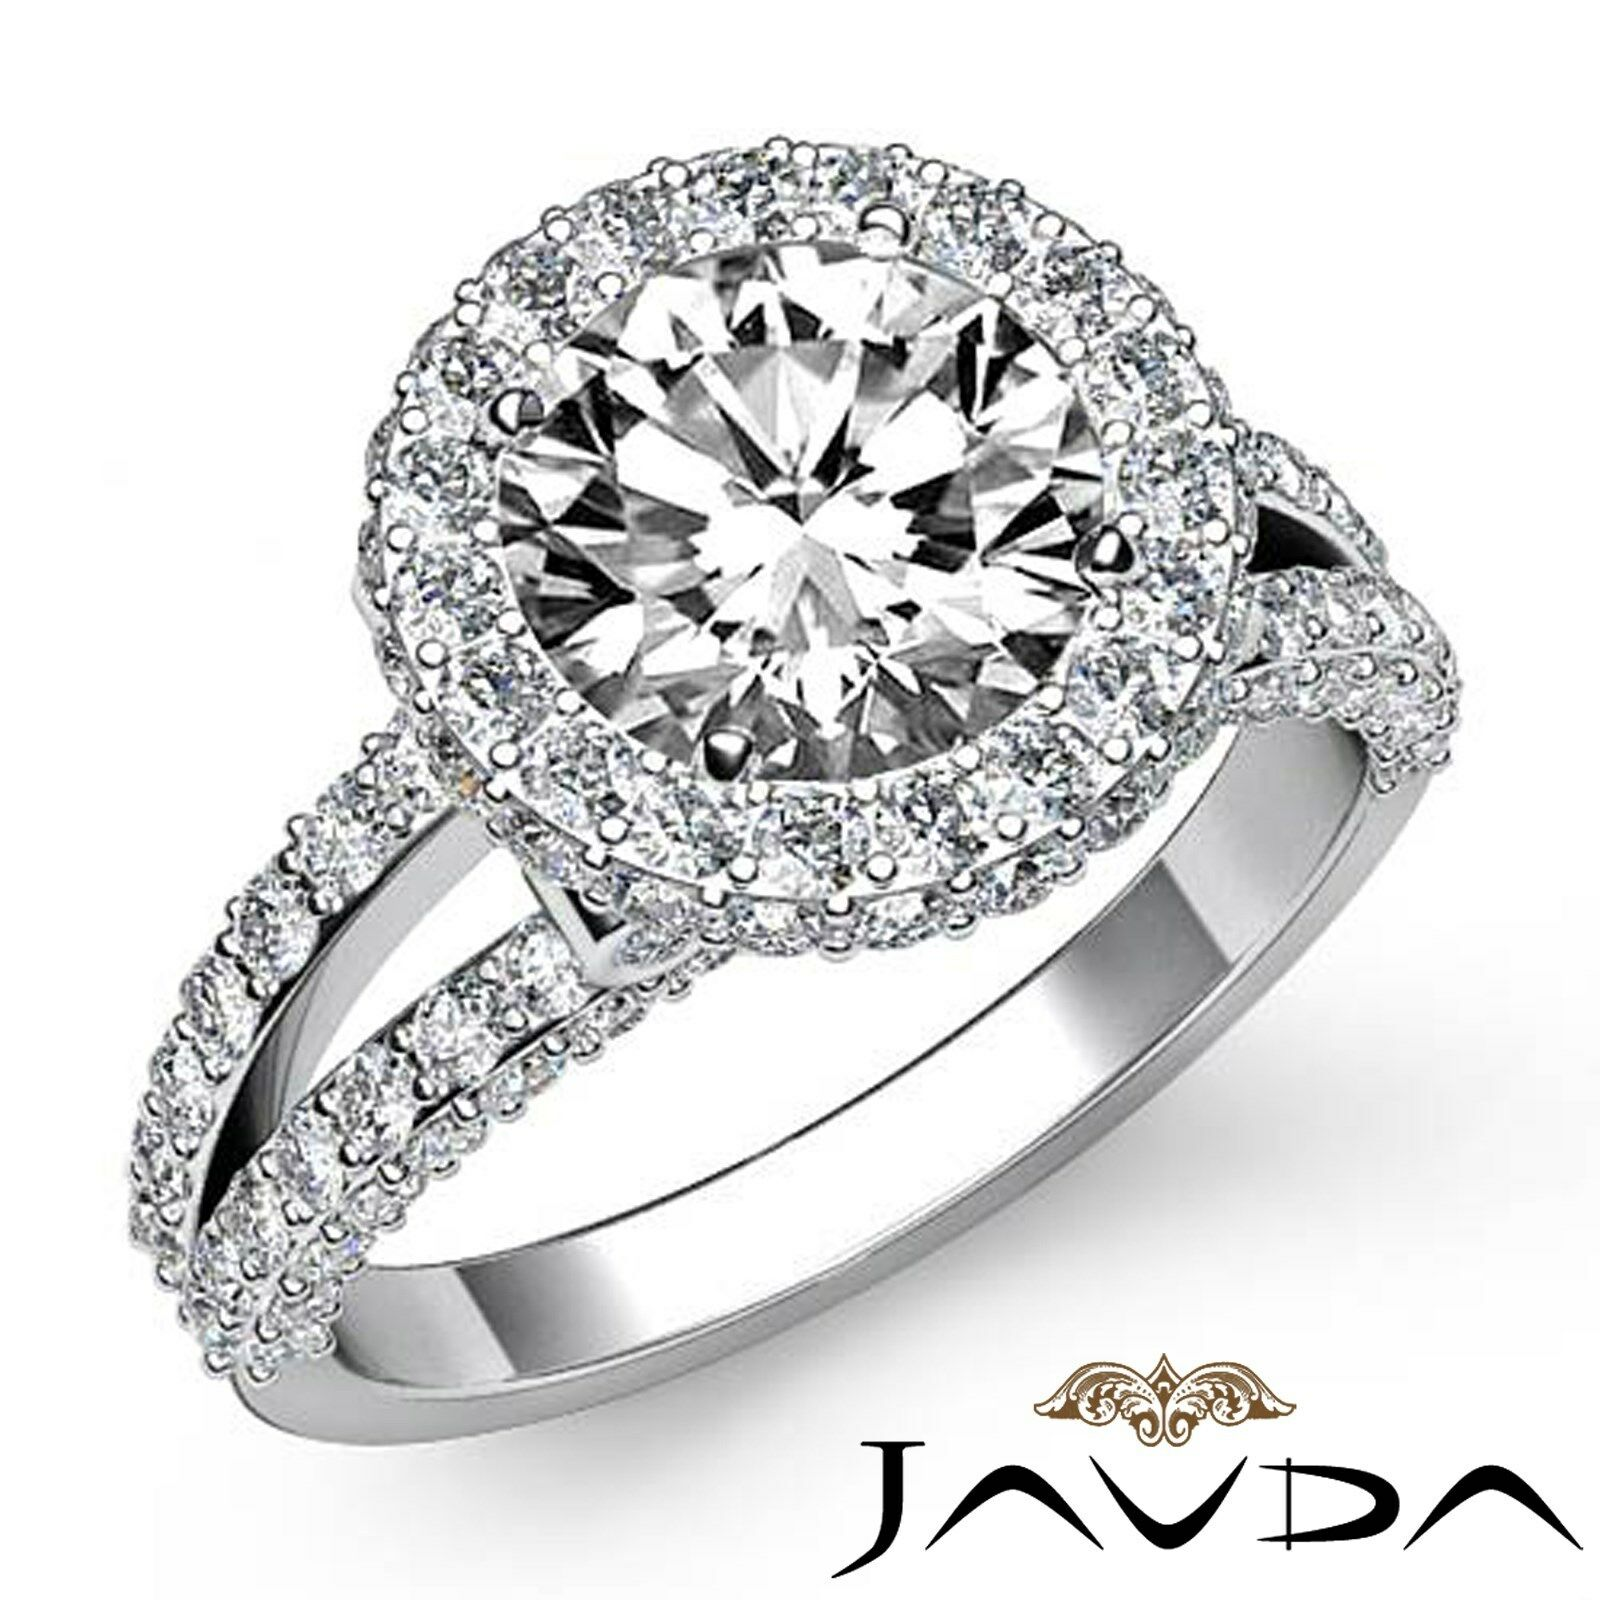 Circa Halo Split Shank Round Diamond Engagement Pave Bezel Ring GIA G VS1 2.9Ct